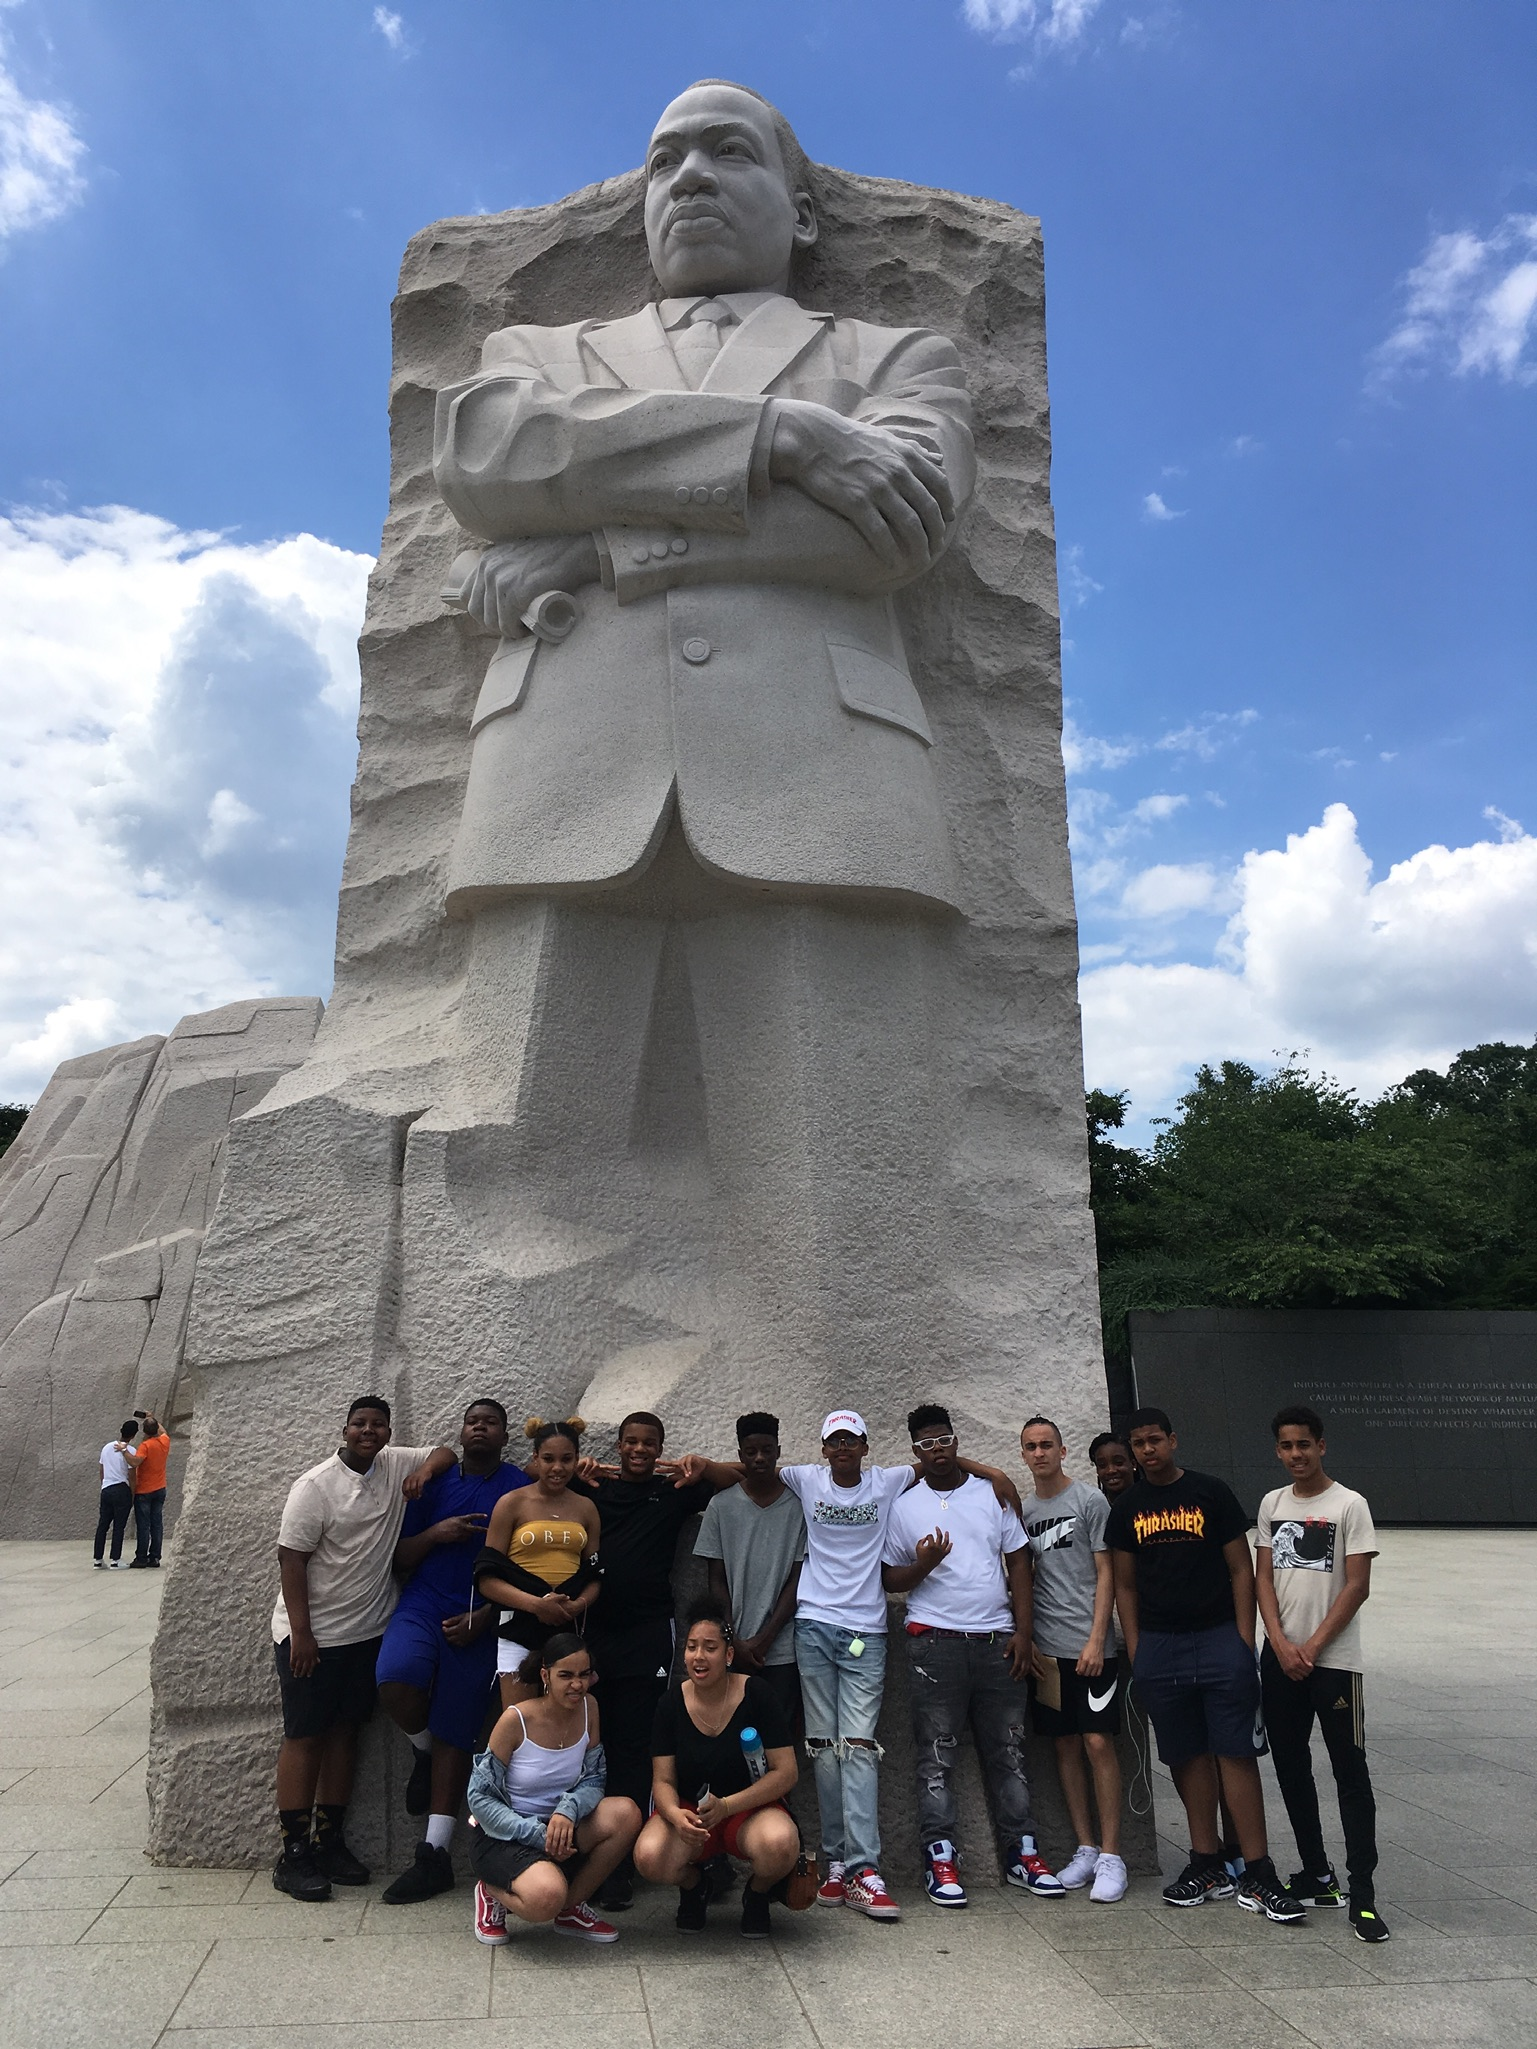 Posing with Martin Luther King Jr.